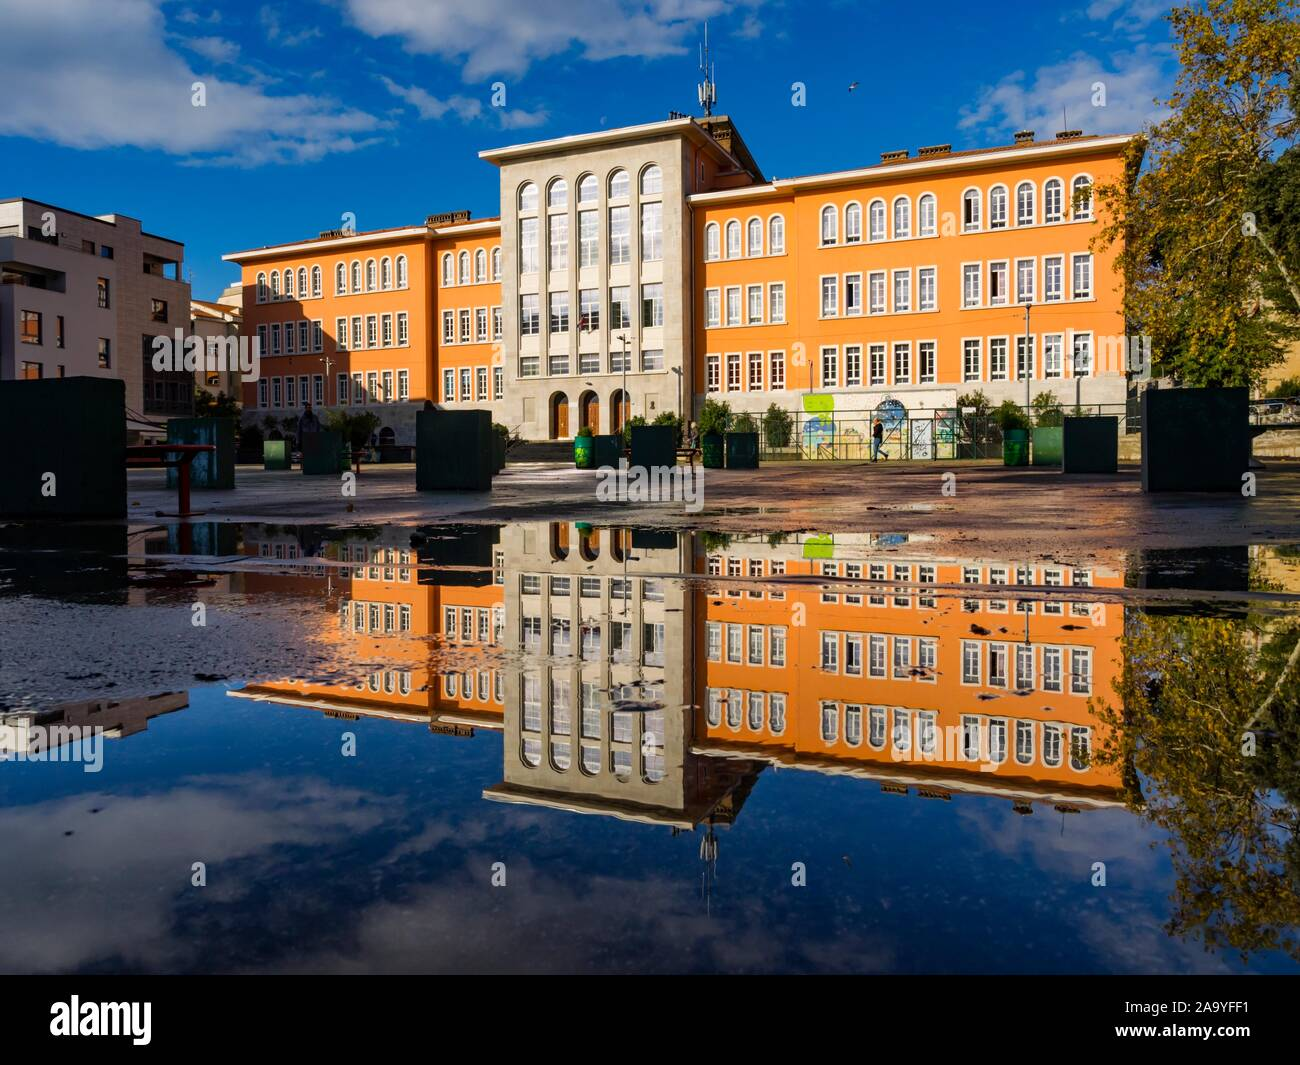 Elementary school Nikola Tesla in Rijeka in Croatia Stock Photo